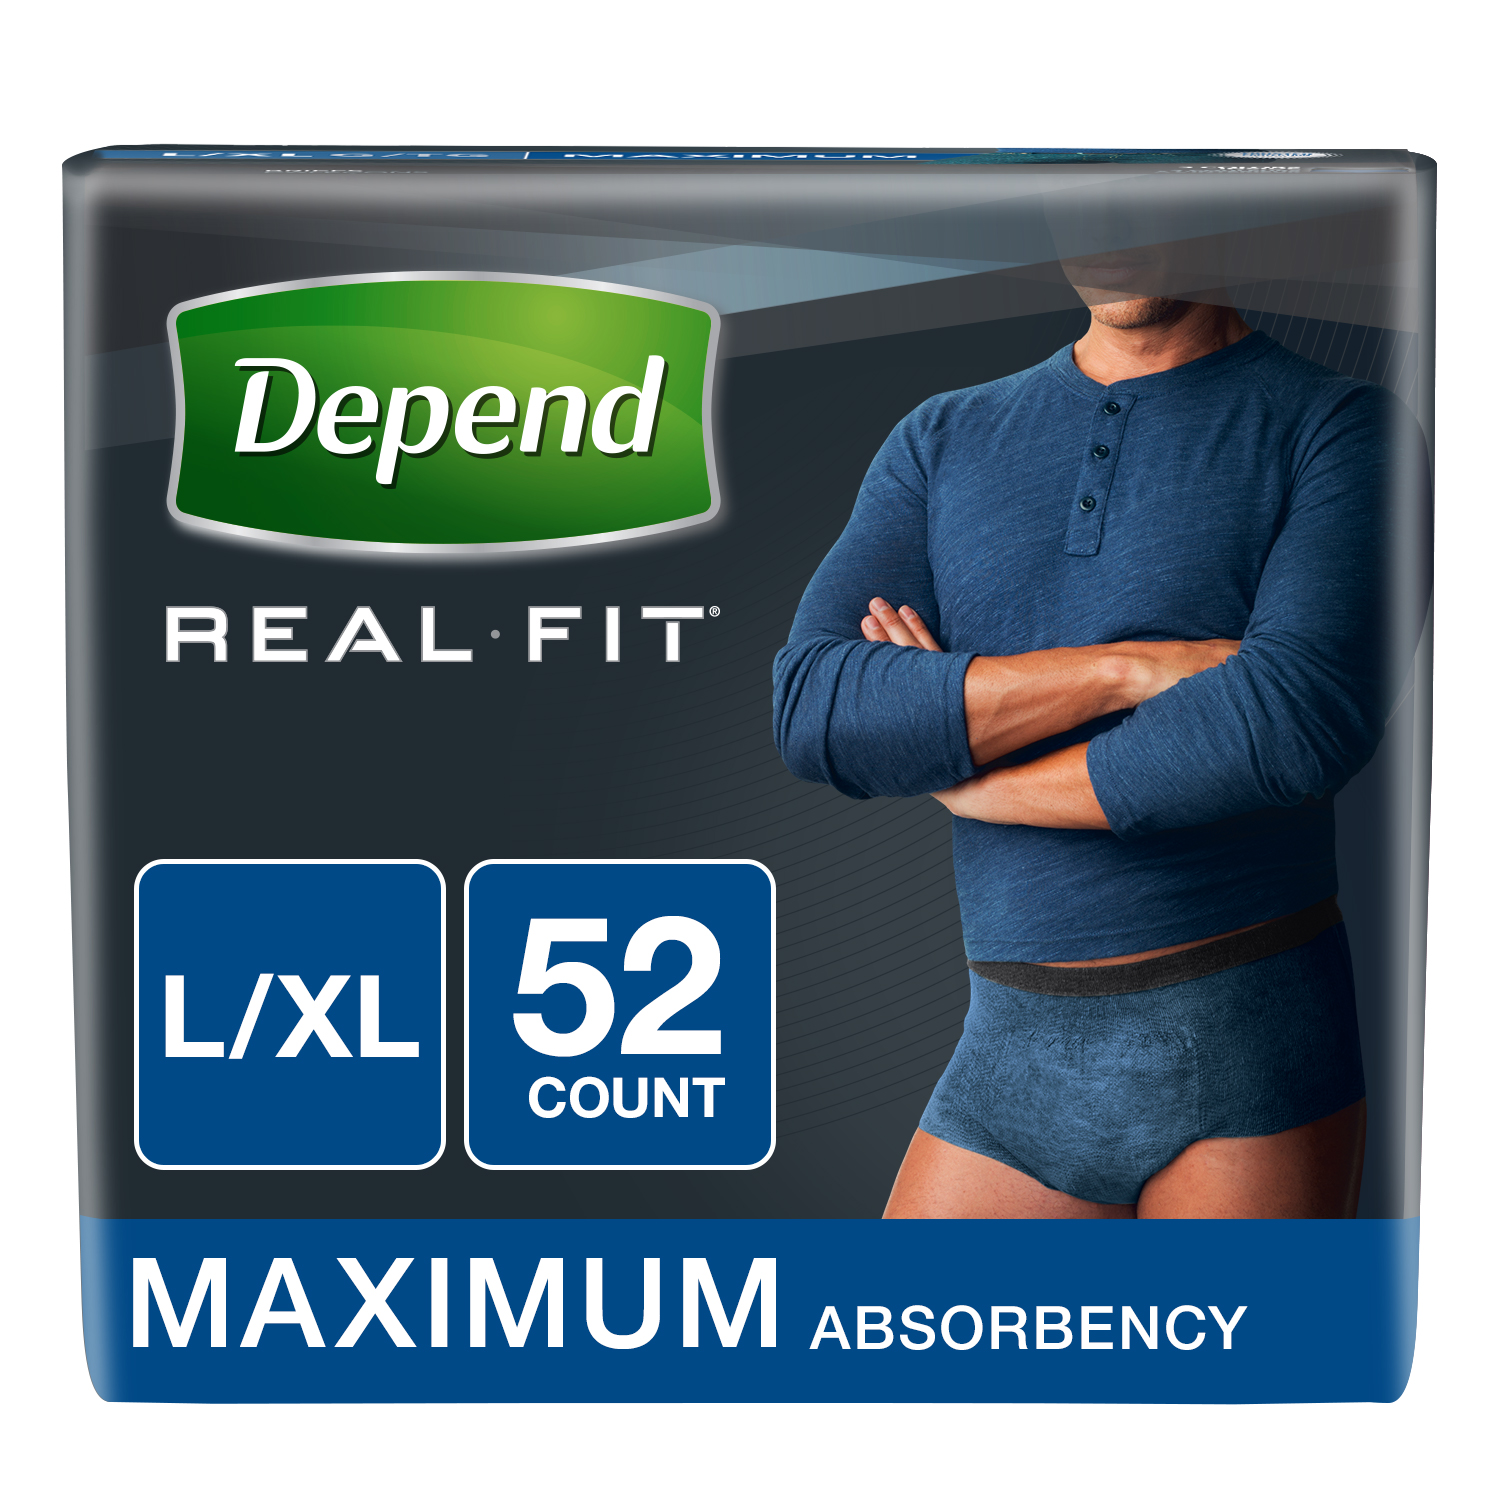 Depend Real Fit Incontinence Briefs for Men, Maximum Absorbency, L/XL, Blue, 52 count